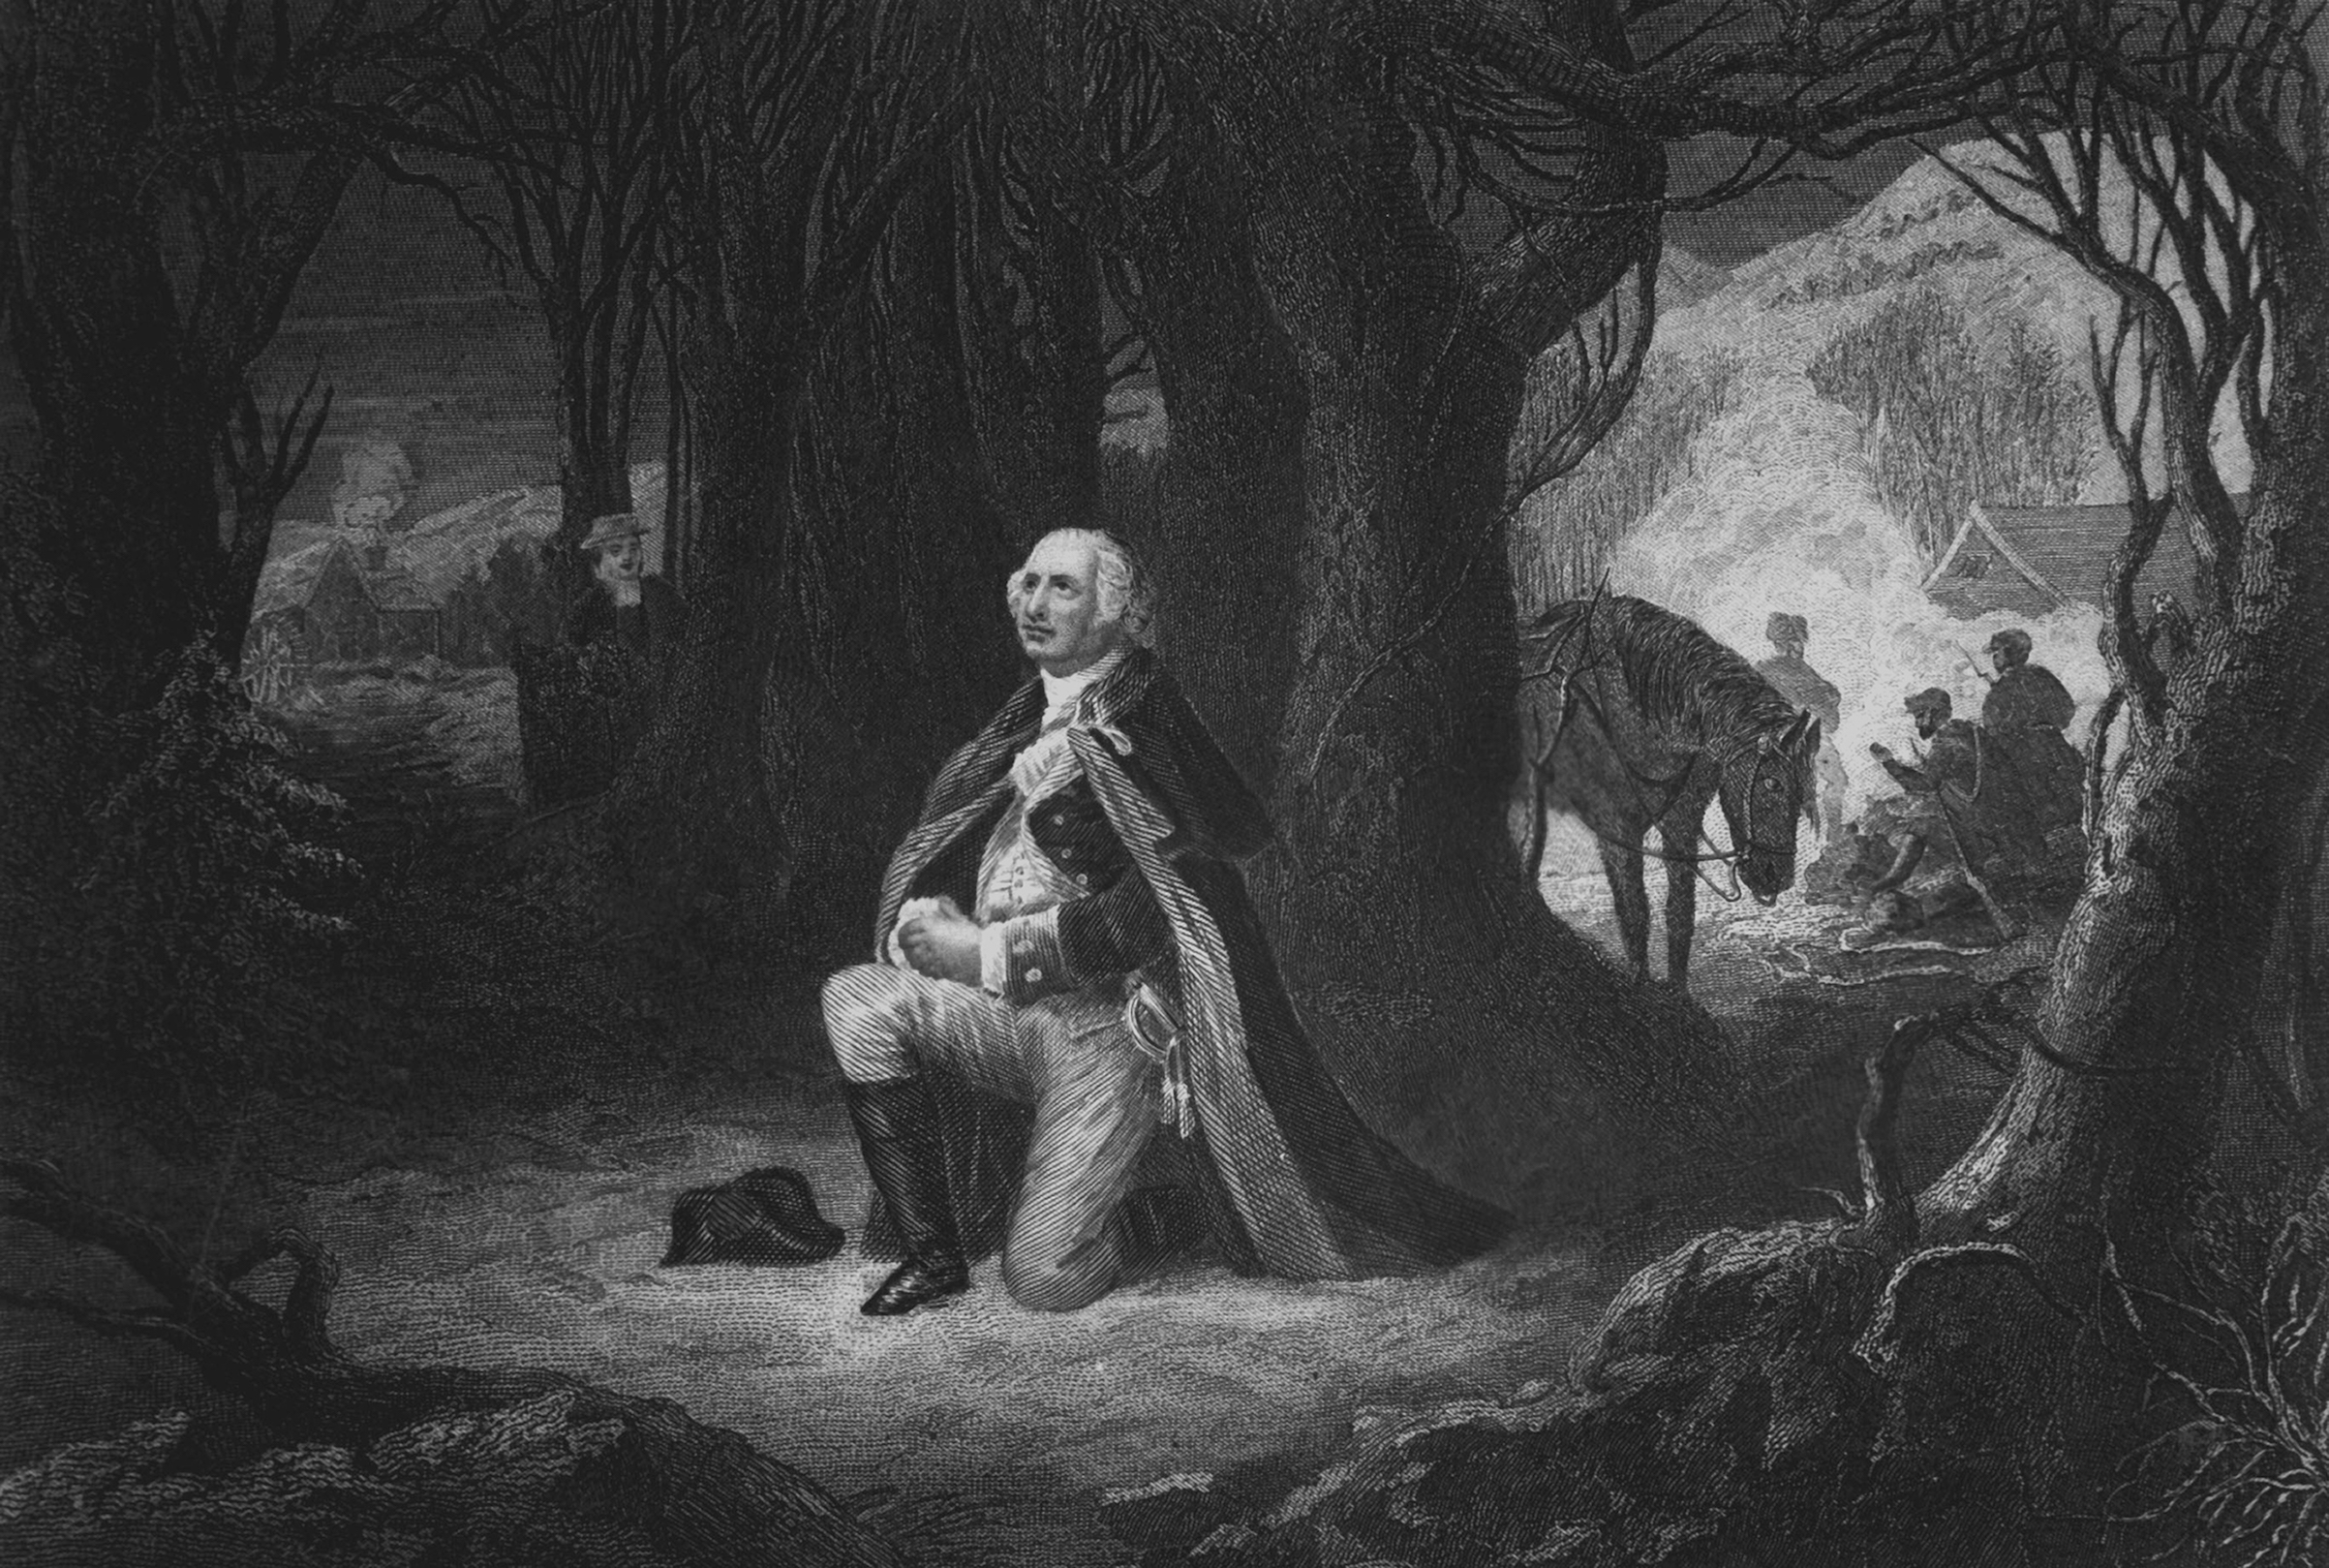 Engraving depicting General George Washington kneeling in prayer, while his soldiers camp in the background, at Valley Forge, Pennsylvania, during the winter of 1777. Copy of engraving by John McRae after a painting by Henry Brueckner, published 1866.